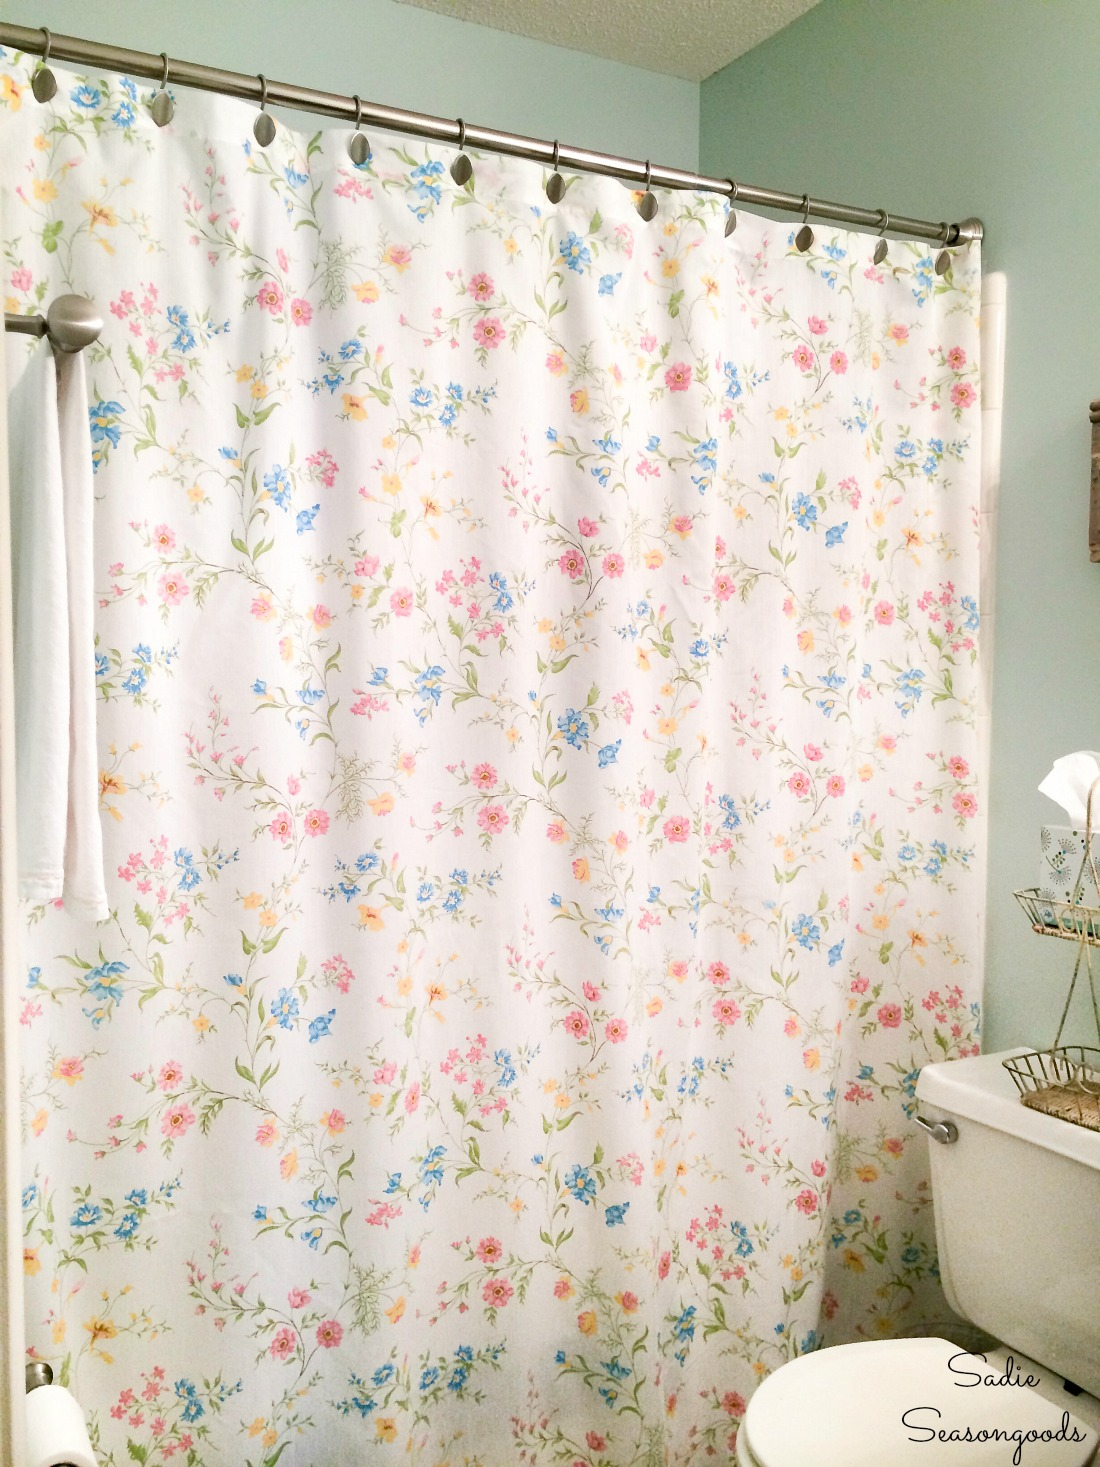 Floral Shower Curtain from Vintage Sheets for a Cottage Style Bathroom